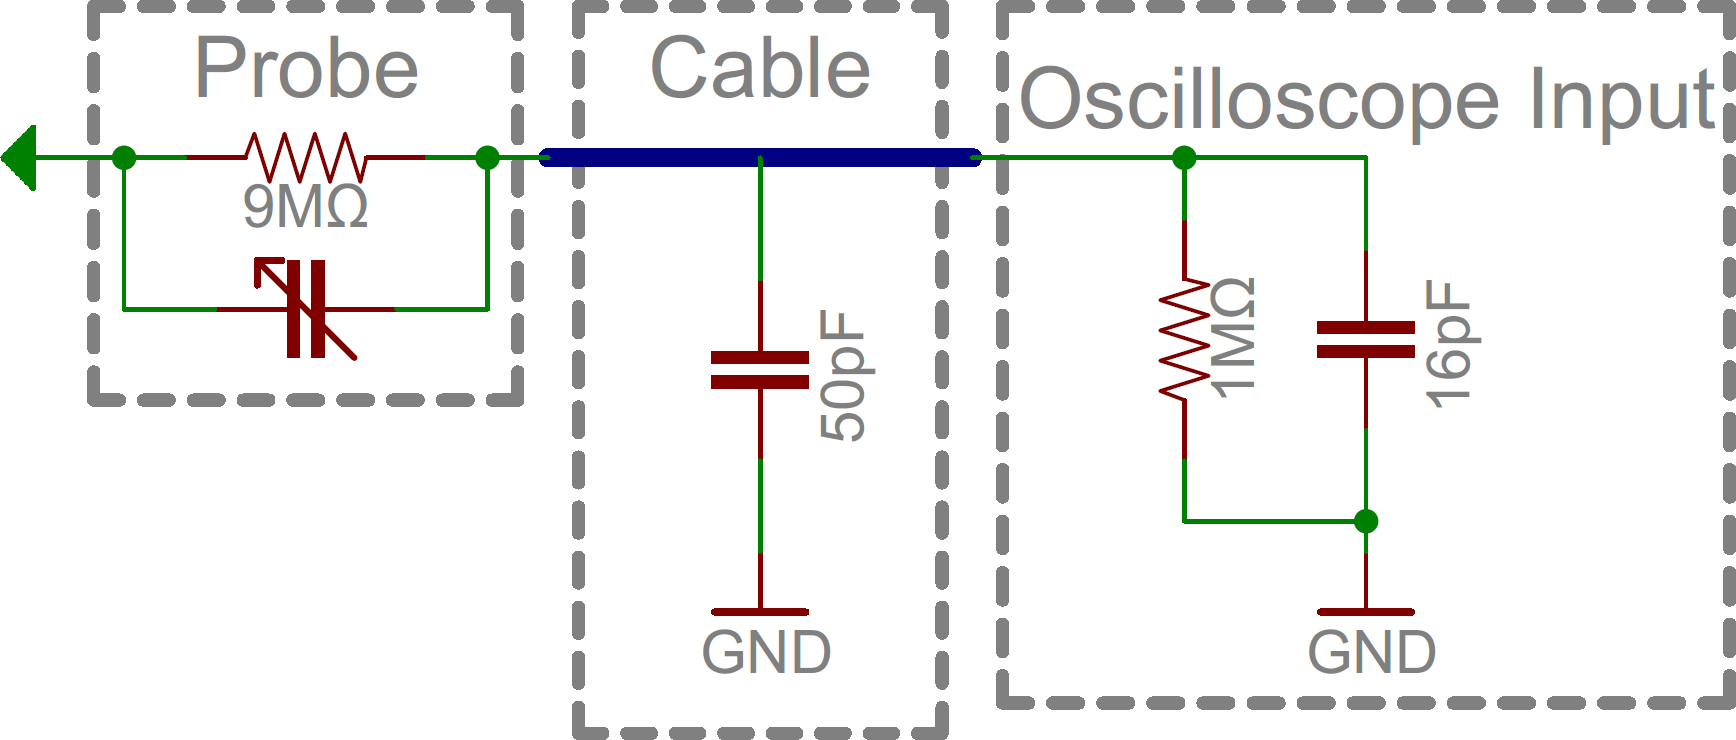 How To Use An Oscilloscope 555 Timer Design Calculator Software Simplified Schematic Of Probe Transmission Wire Scope Input